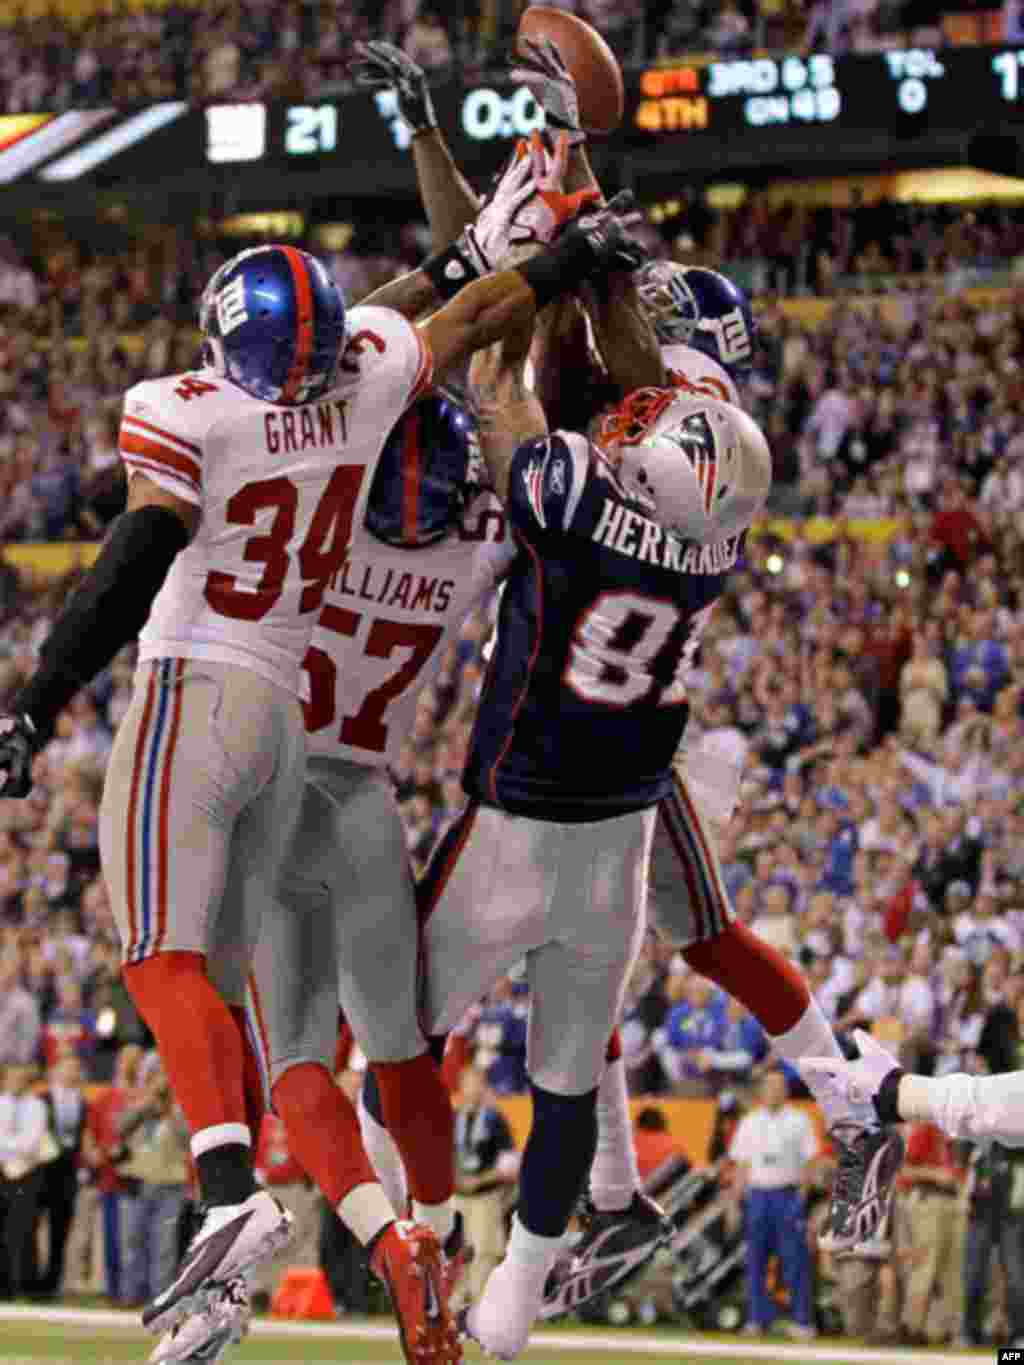 New York Giants safety Deon Grant (34), linebacker Jacquian Williams (57) and safety Kenny Phillips (21) block the final pass to New England Patriots tight end Aaron Hernandez (81) in the NFL Super Bowl XLVI football game, on February 5, 2012 in Indianapo